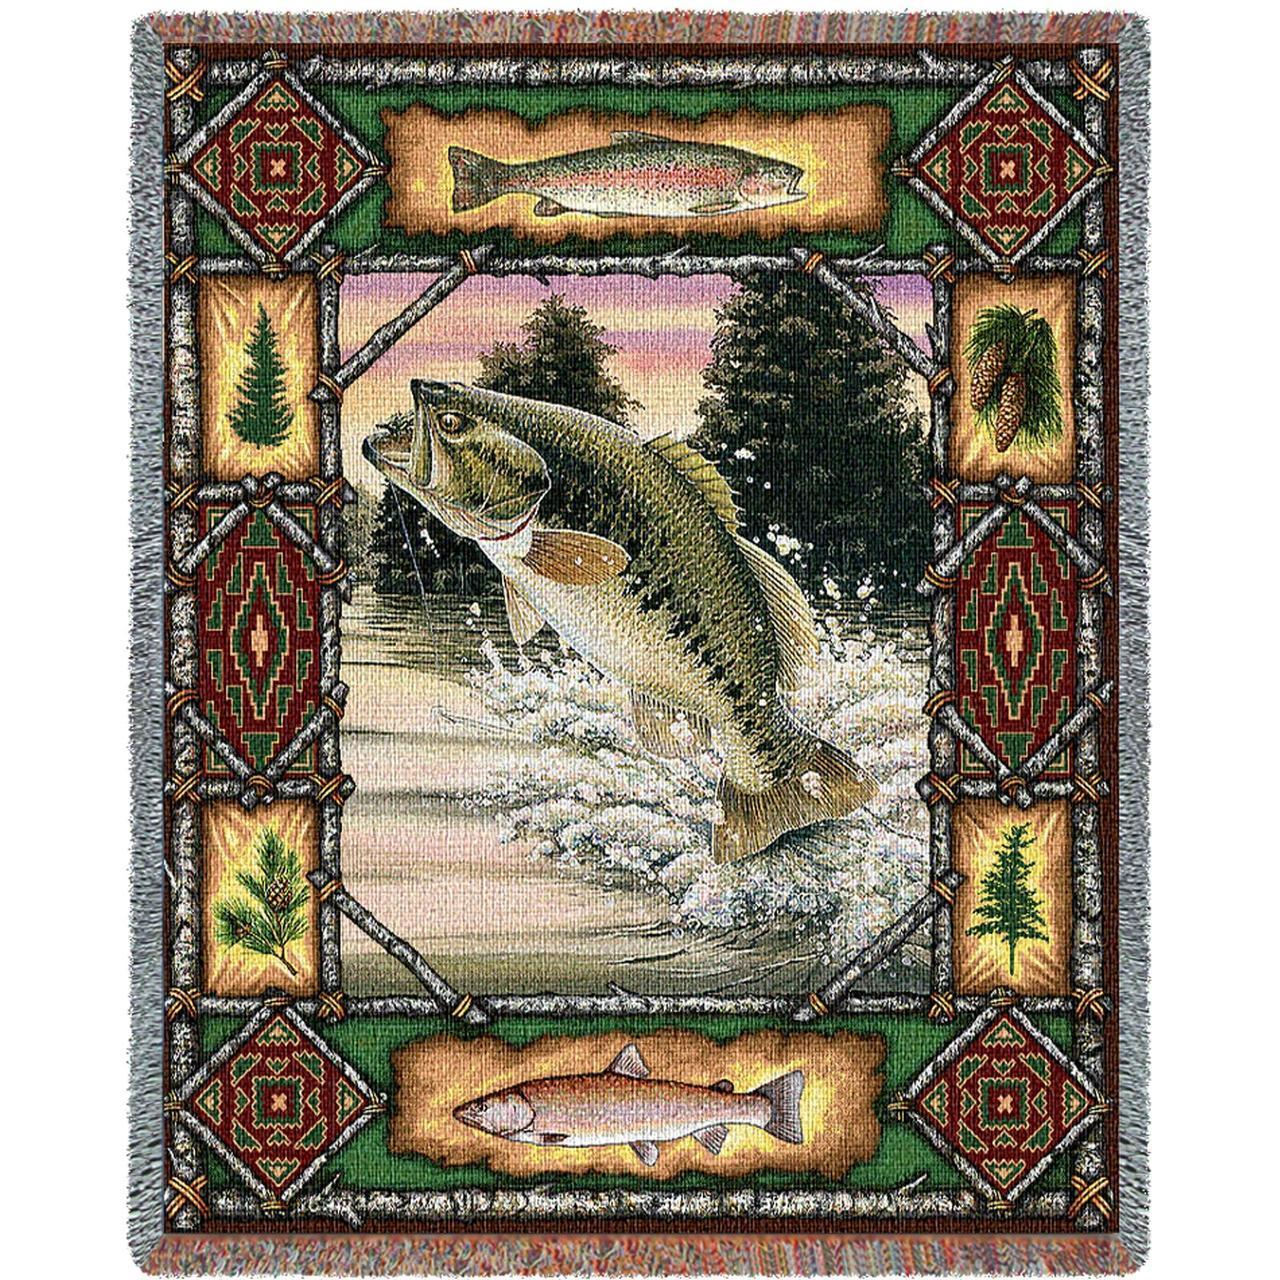 Throw Blanket-54 x 70-Matching-Throw Pillow-Rustic-Fish Lodge-Bass